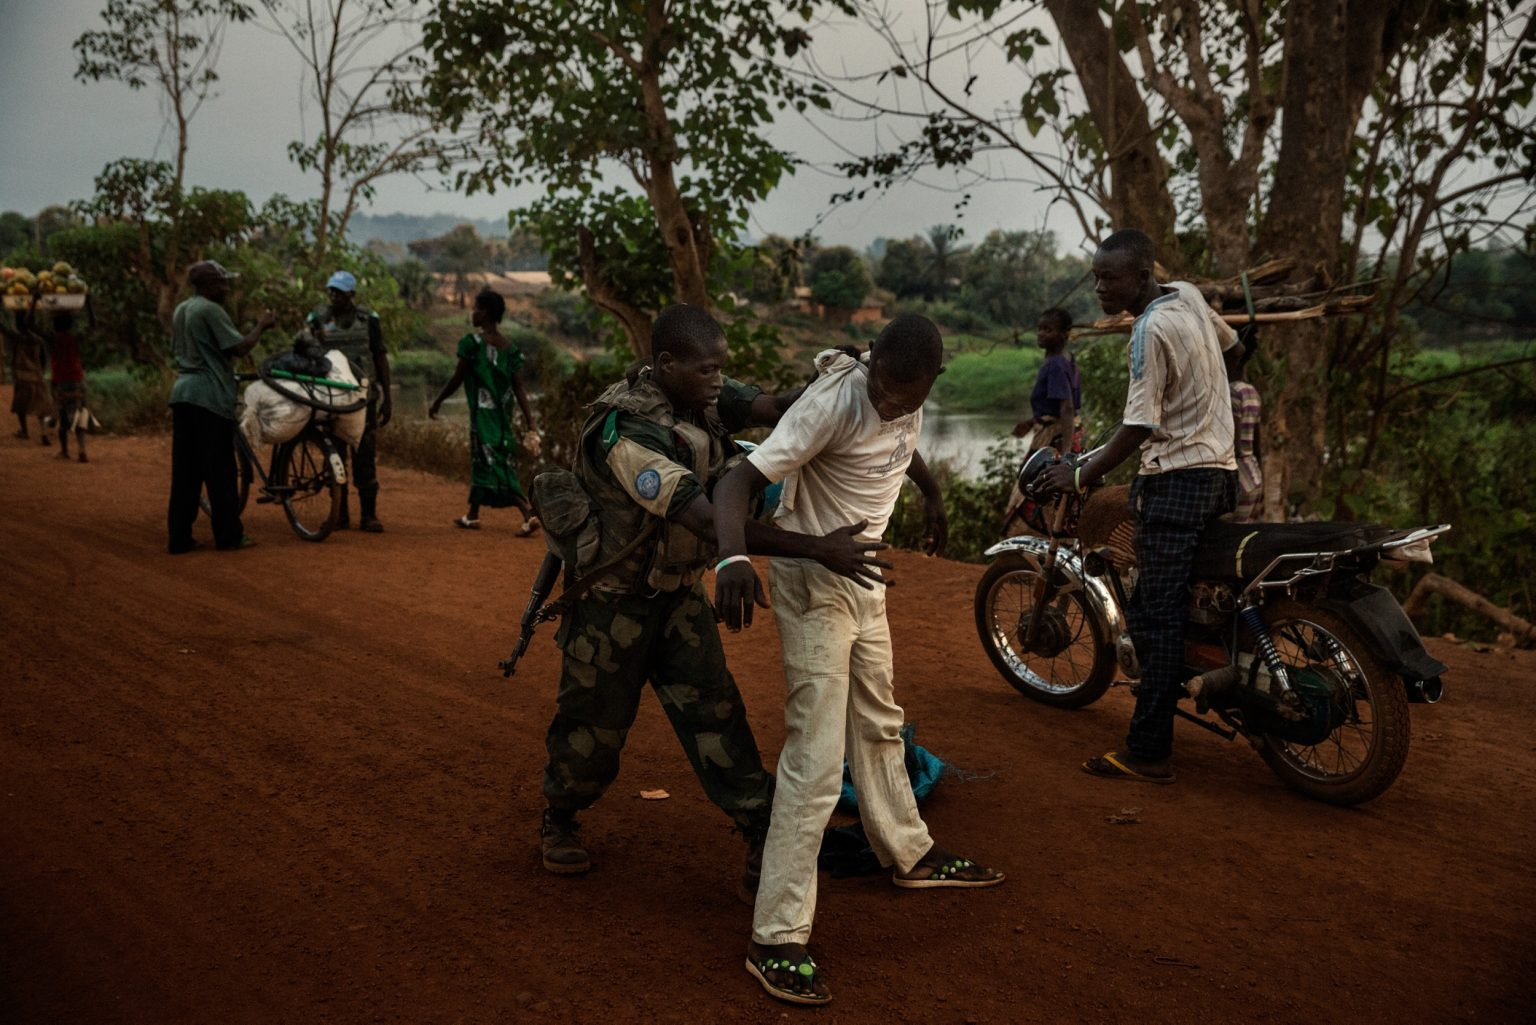 consequence-central-african-republic-two-years-on-from-the-out-7